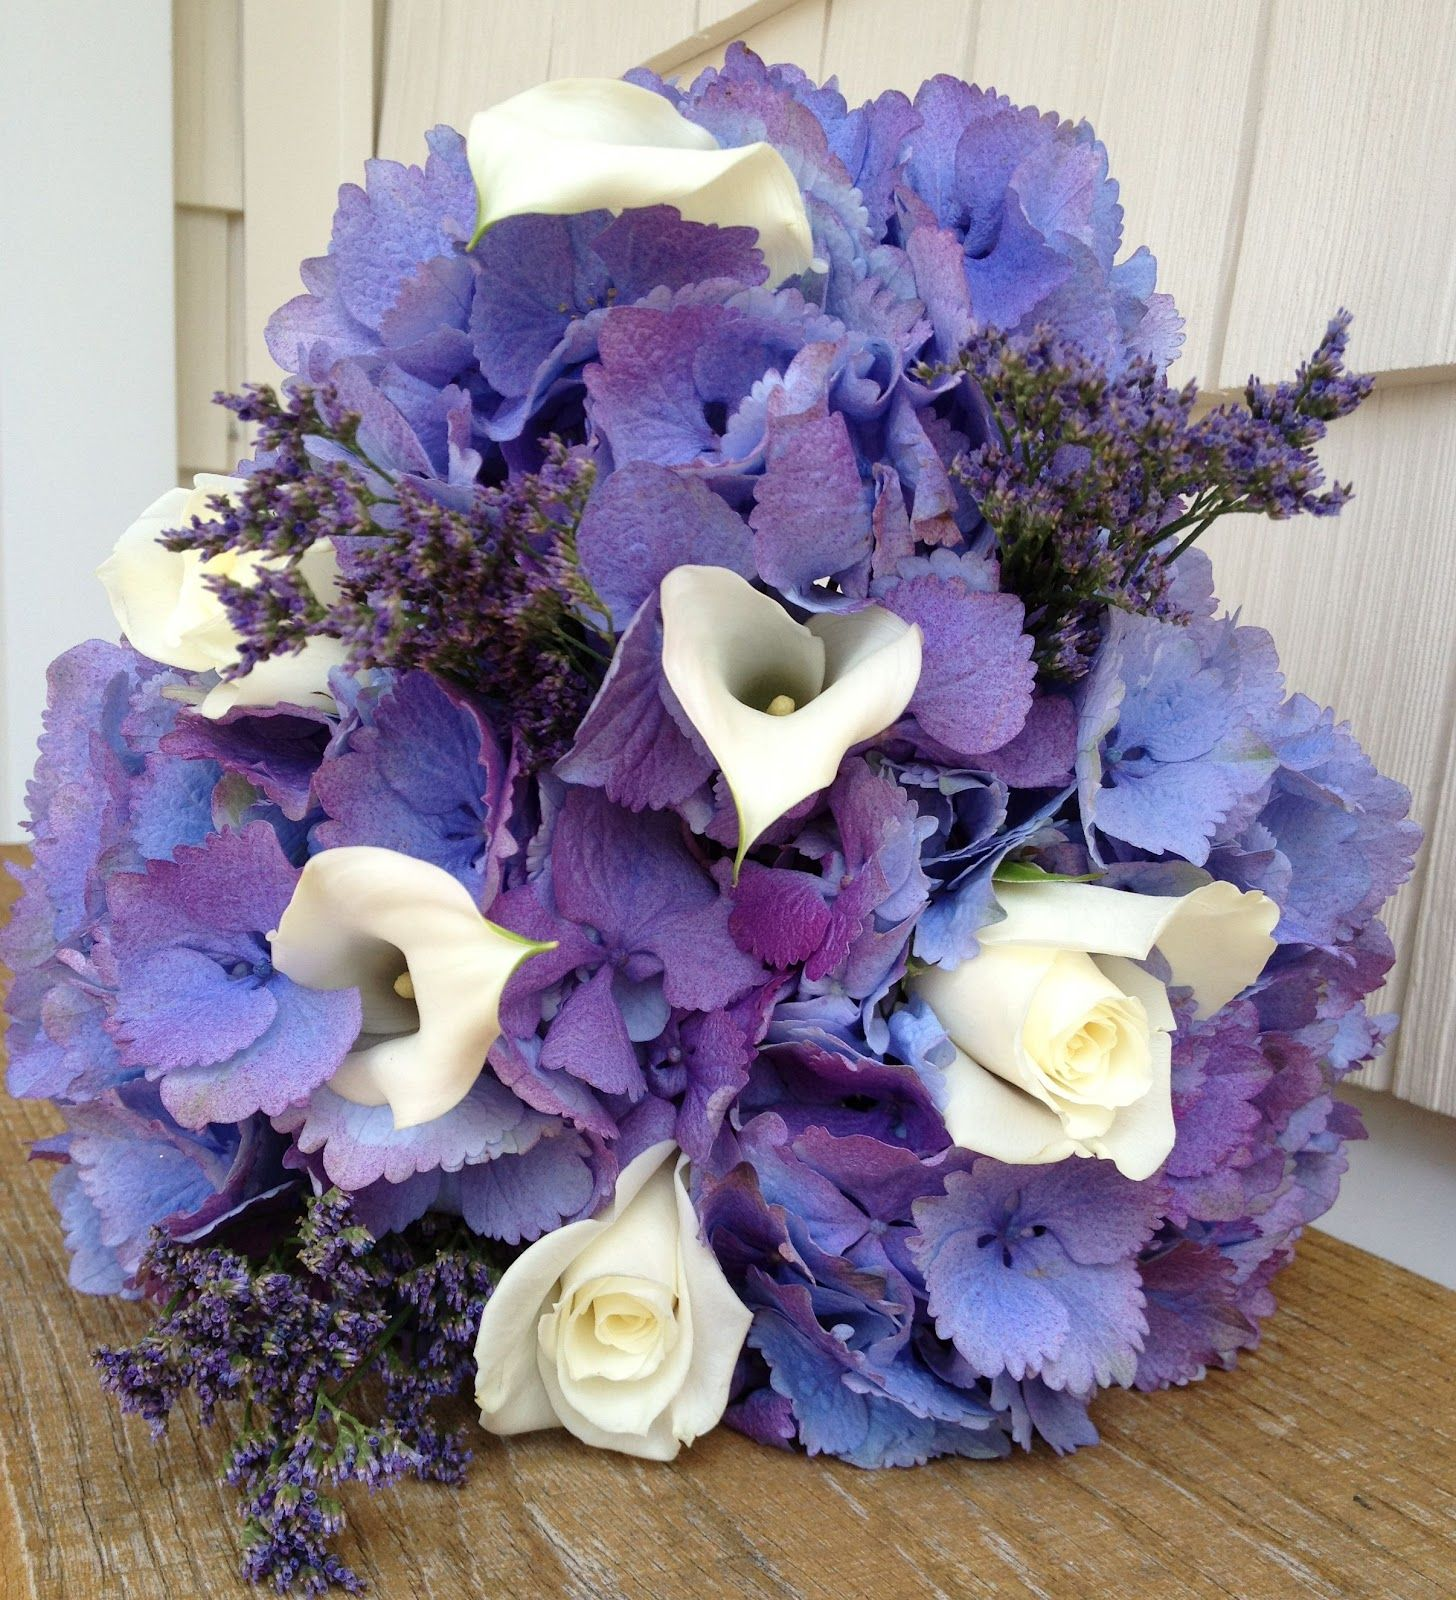 Dark Blue Flowers For Wedding Bouquets: This Bouquet Looked So Nice